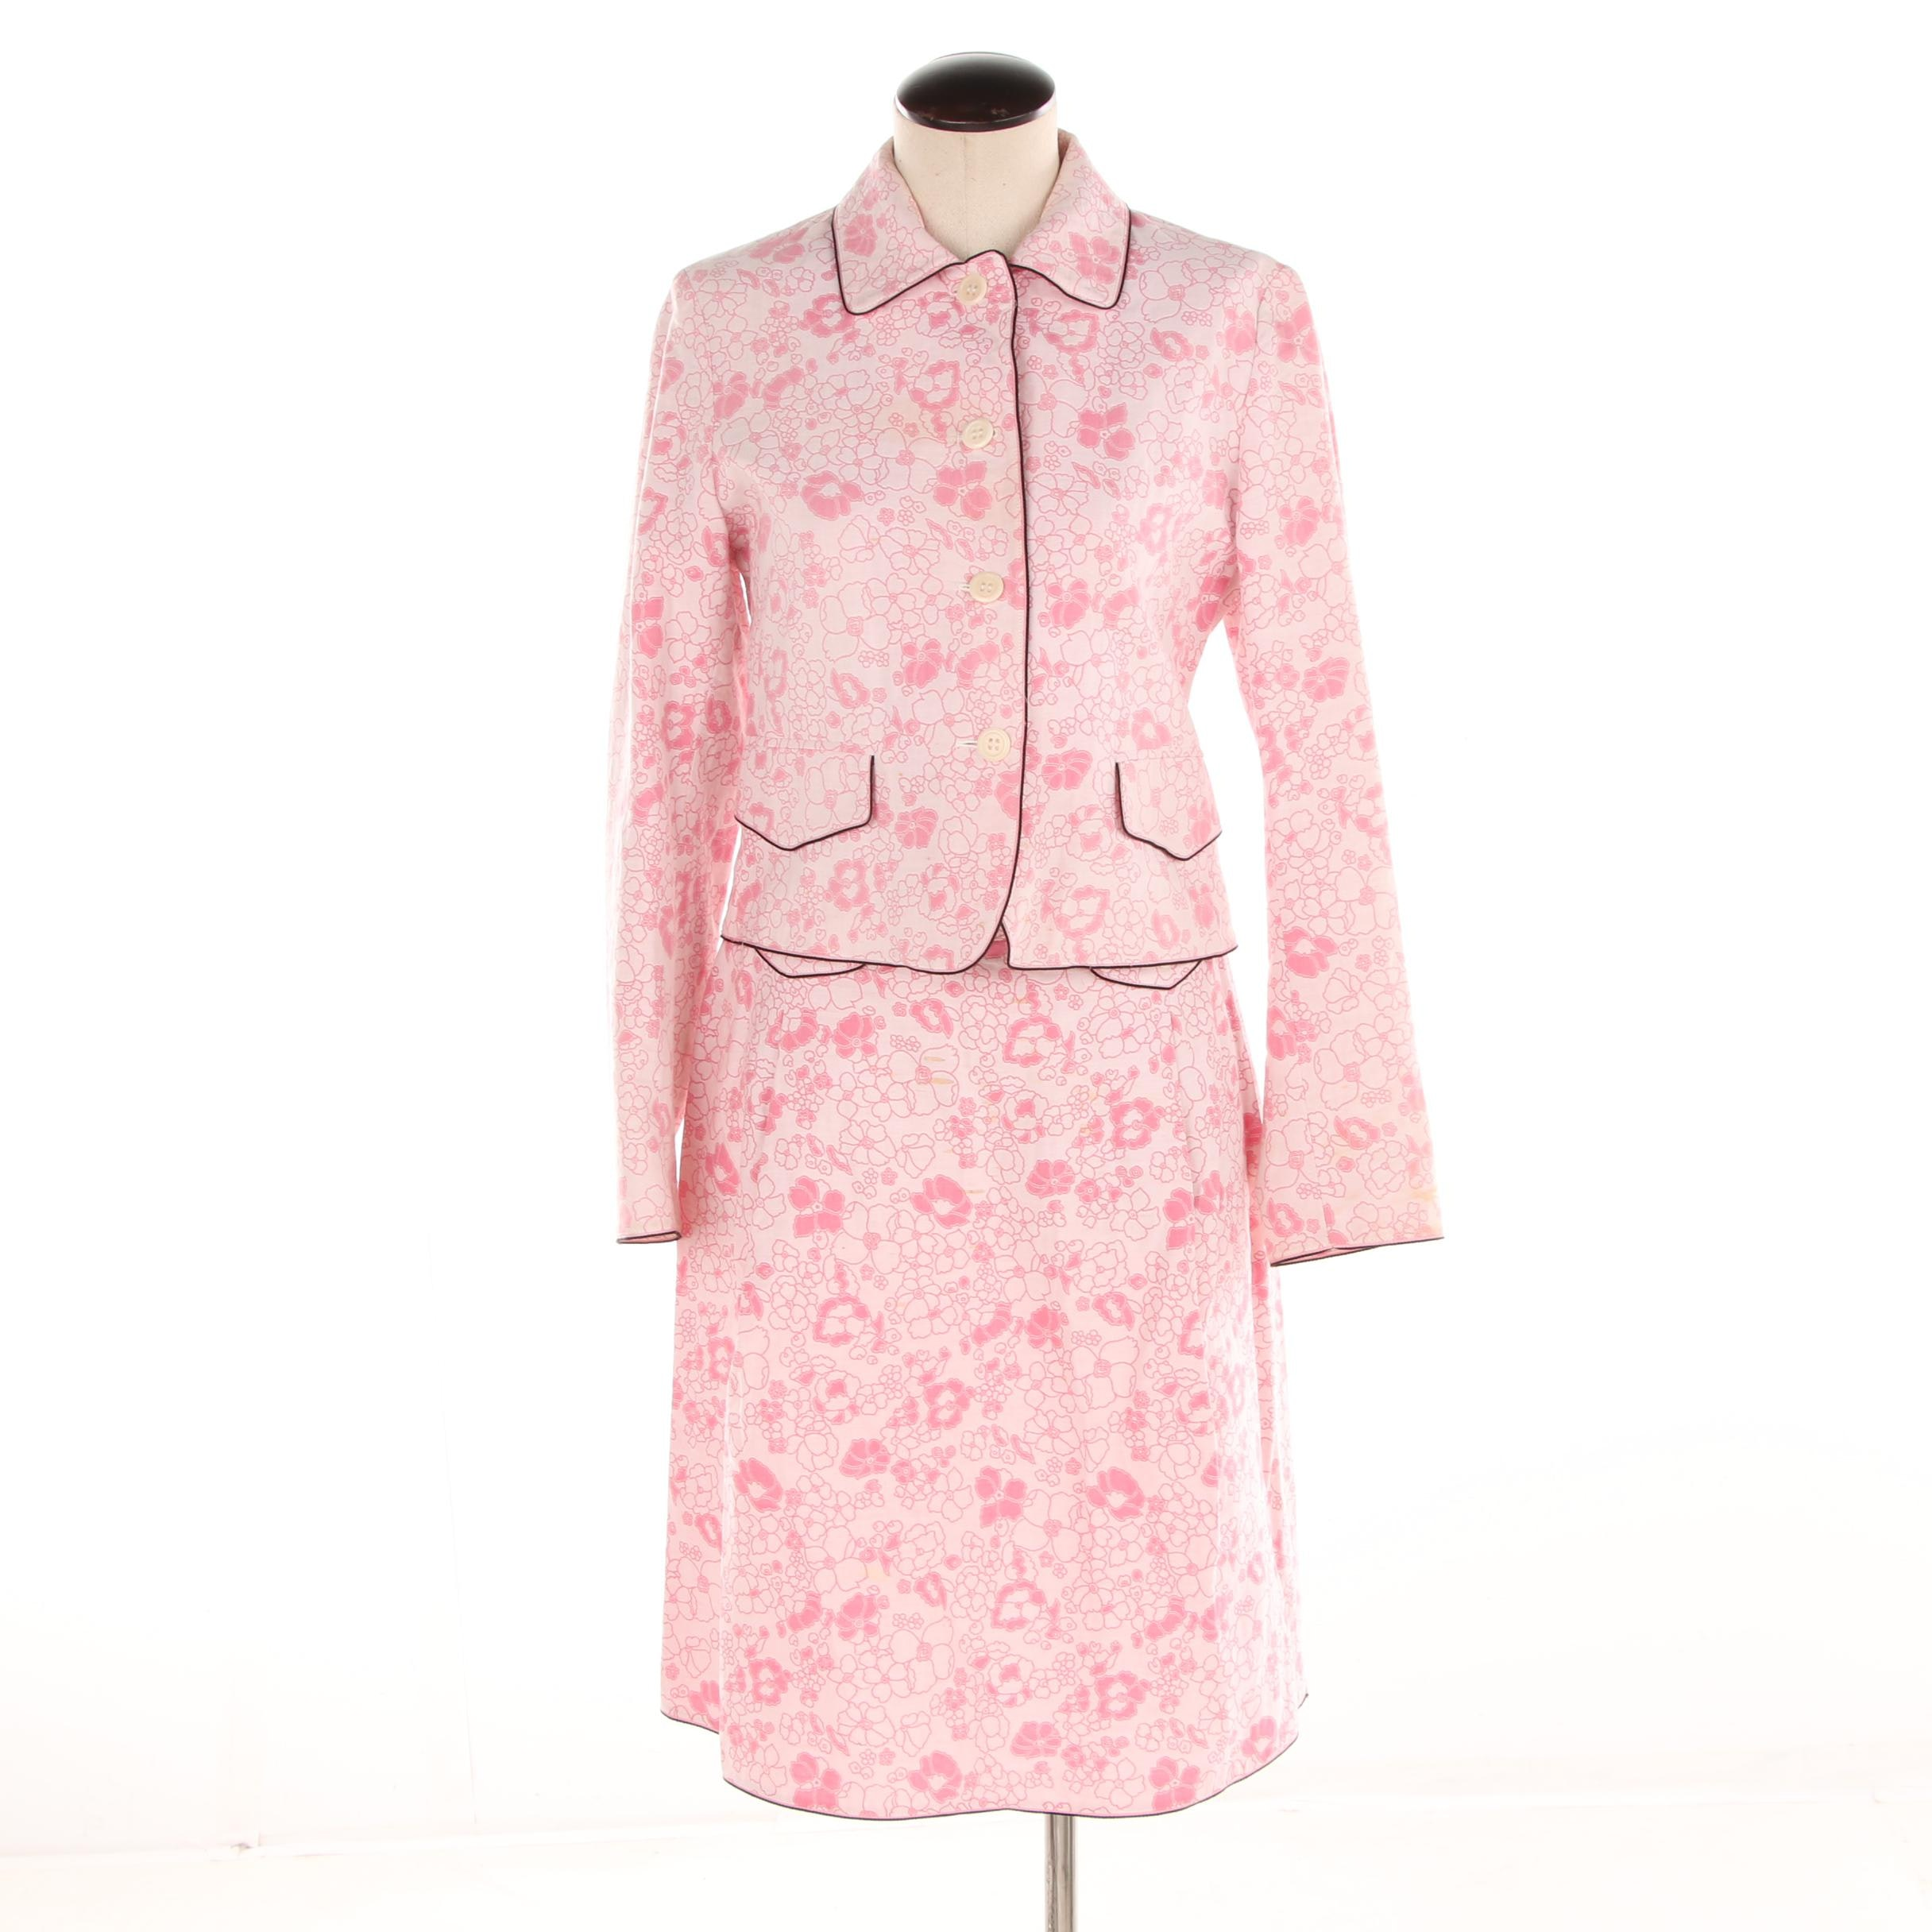 Women's Weekend Max Mara Pink Floral Print Skirt Suit